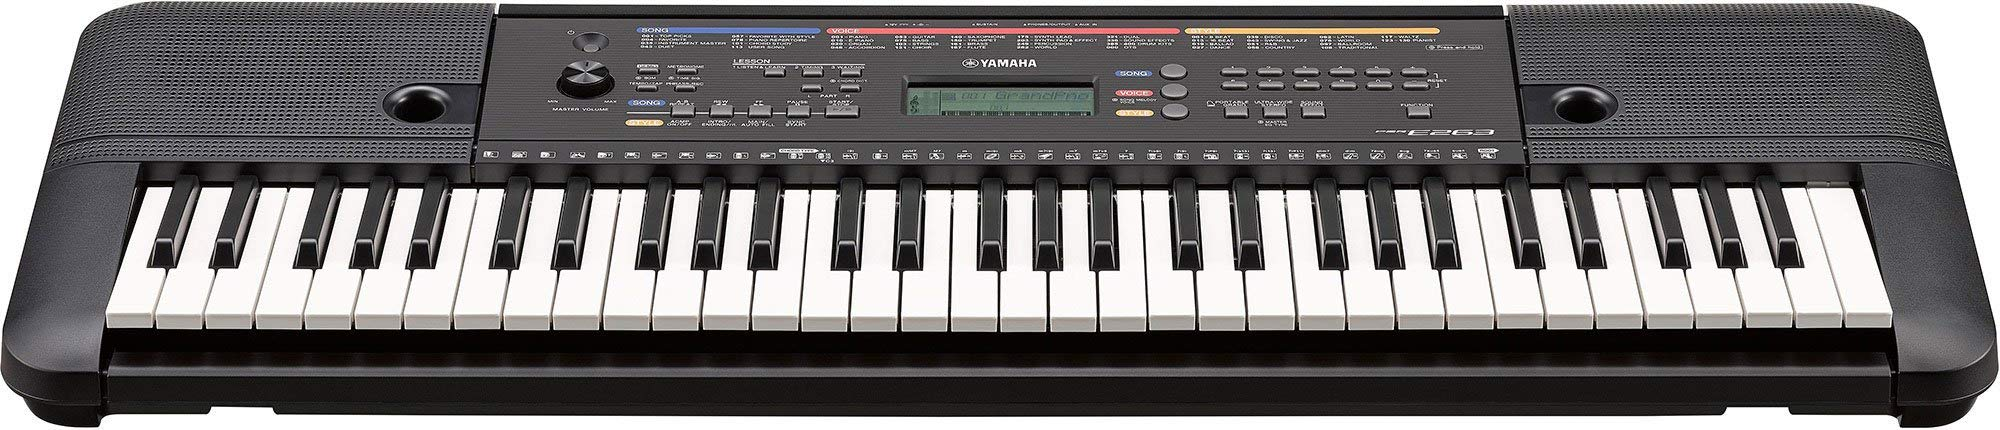 Yamaha PSR-E263 61-Key Portable Keyboard (Renewed) by Yamaha (Image #10)